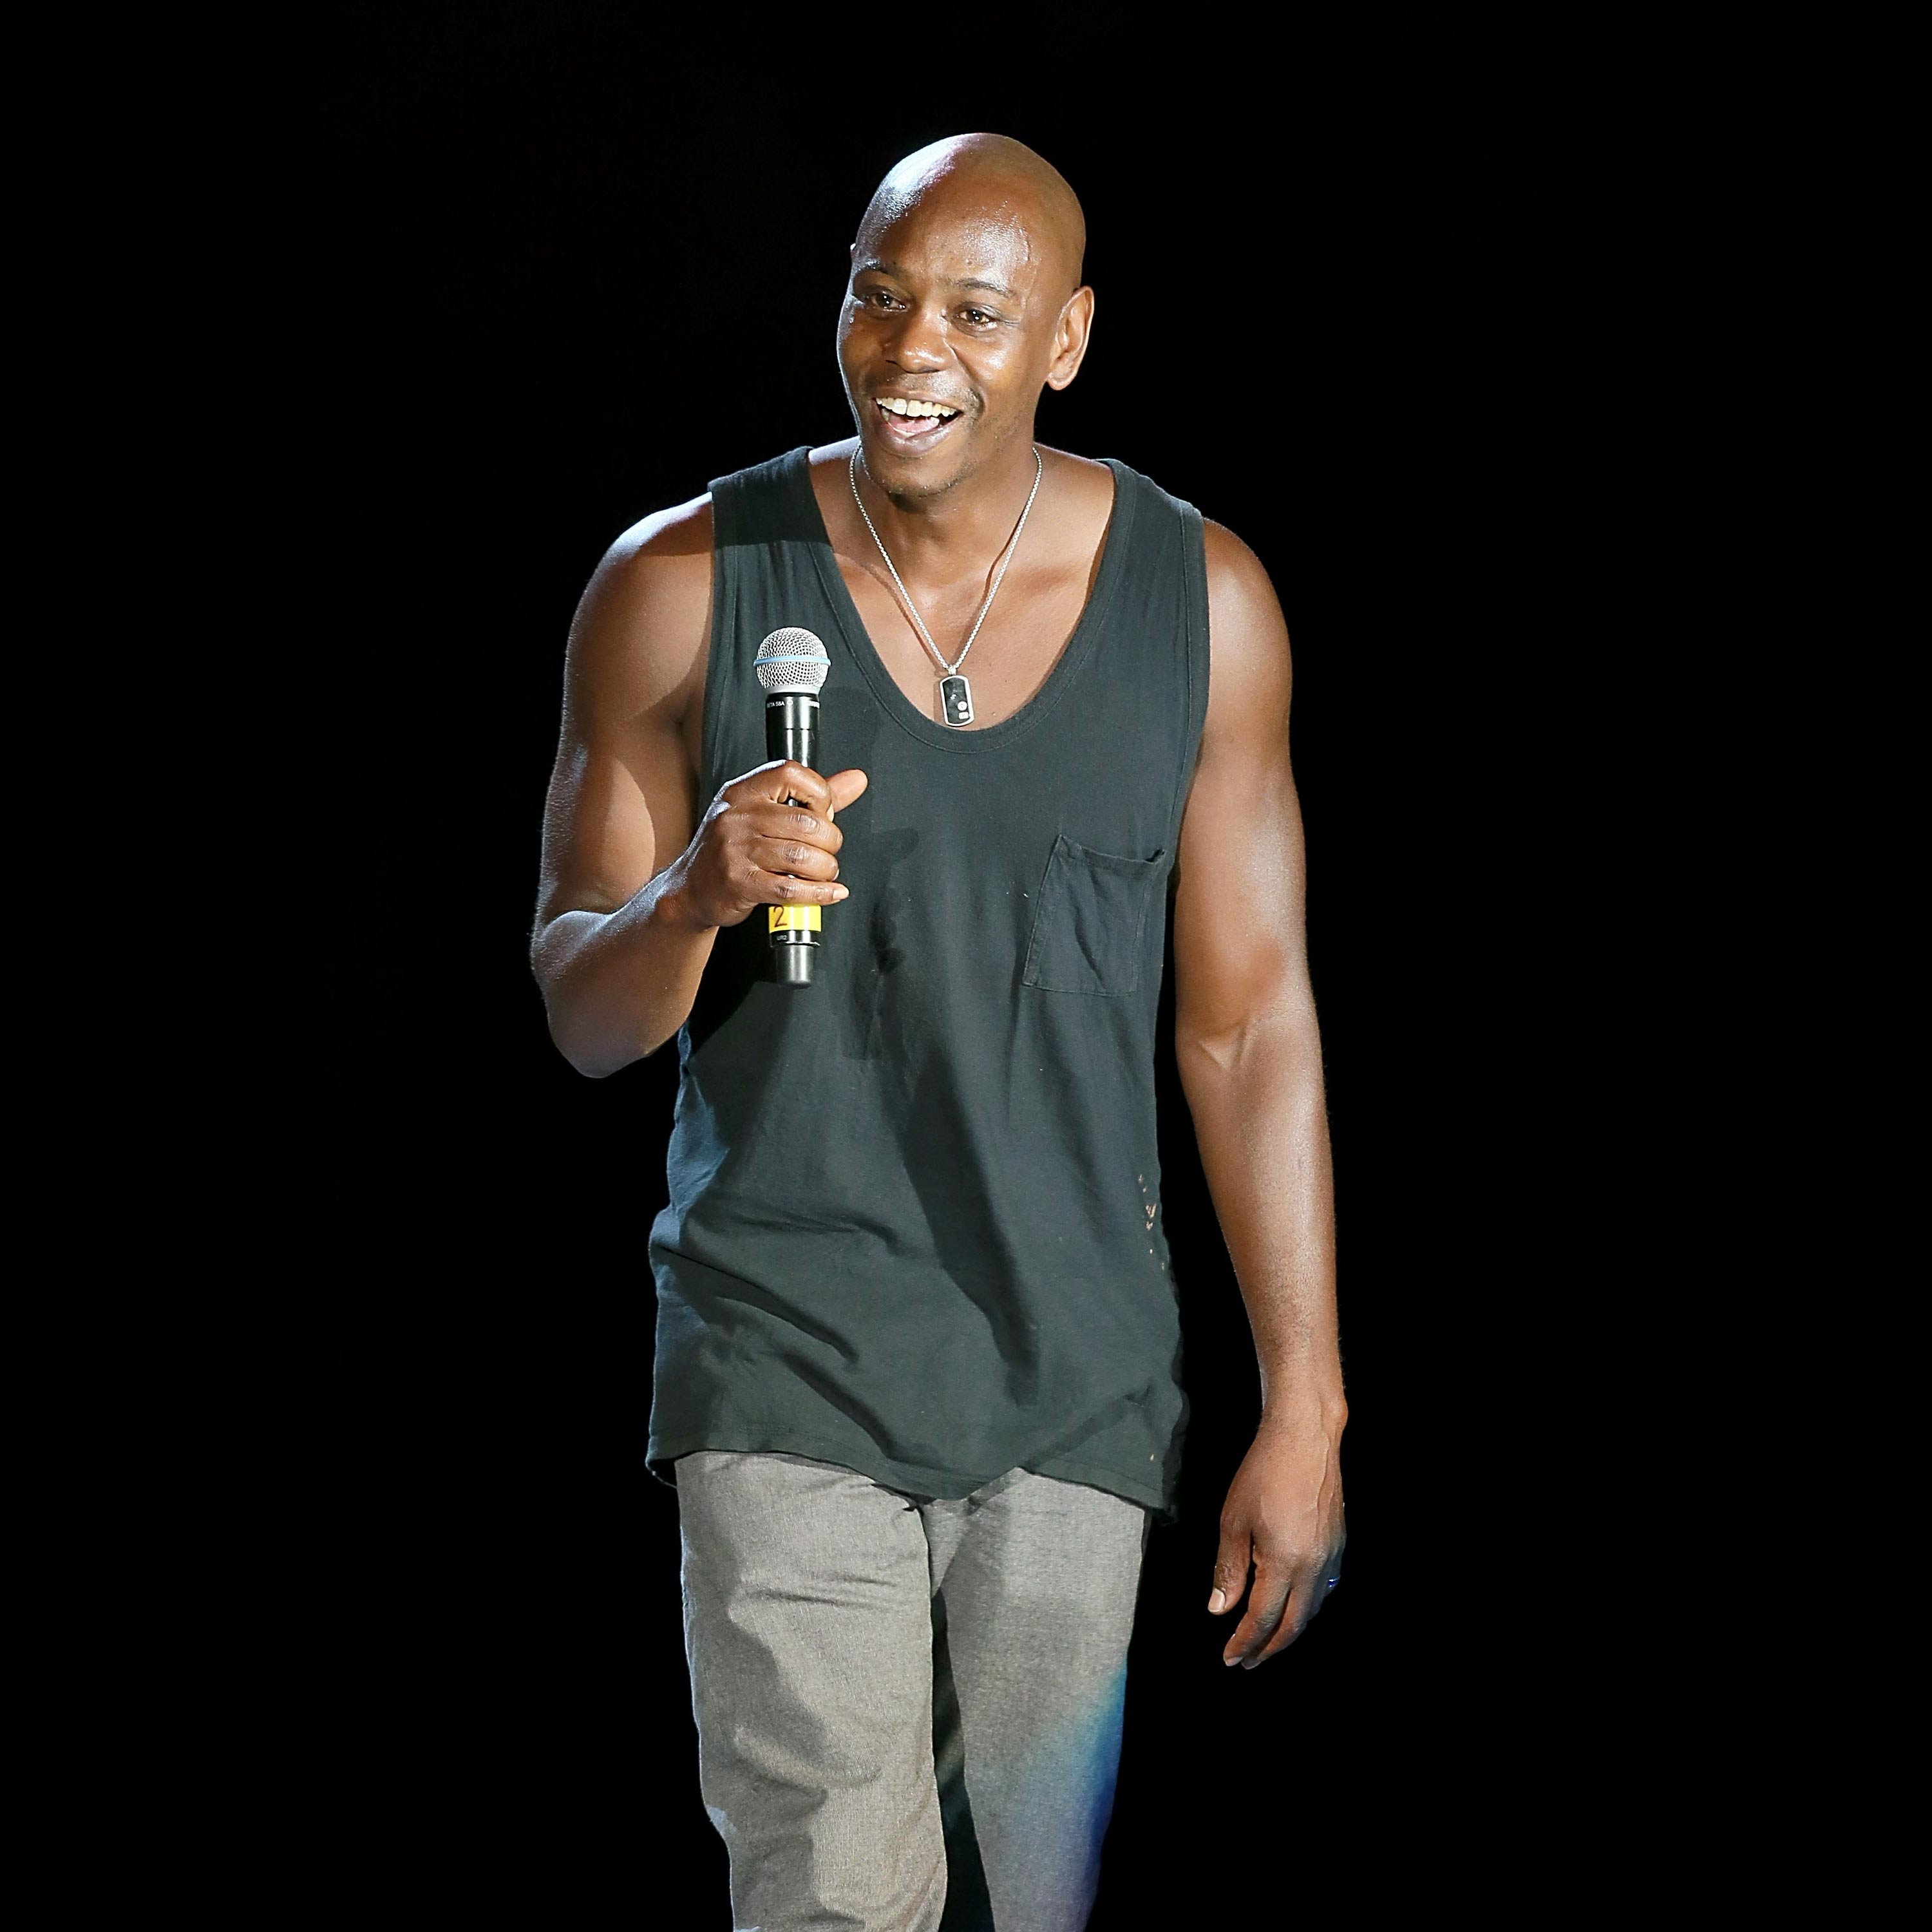 http://pixel.nymag.com/content/dam/daily/vulture/2013/08/30/30-dave-chapelle-2.jpg